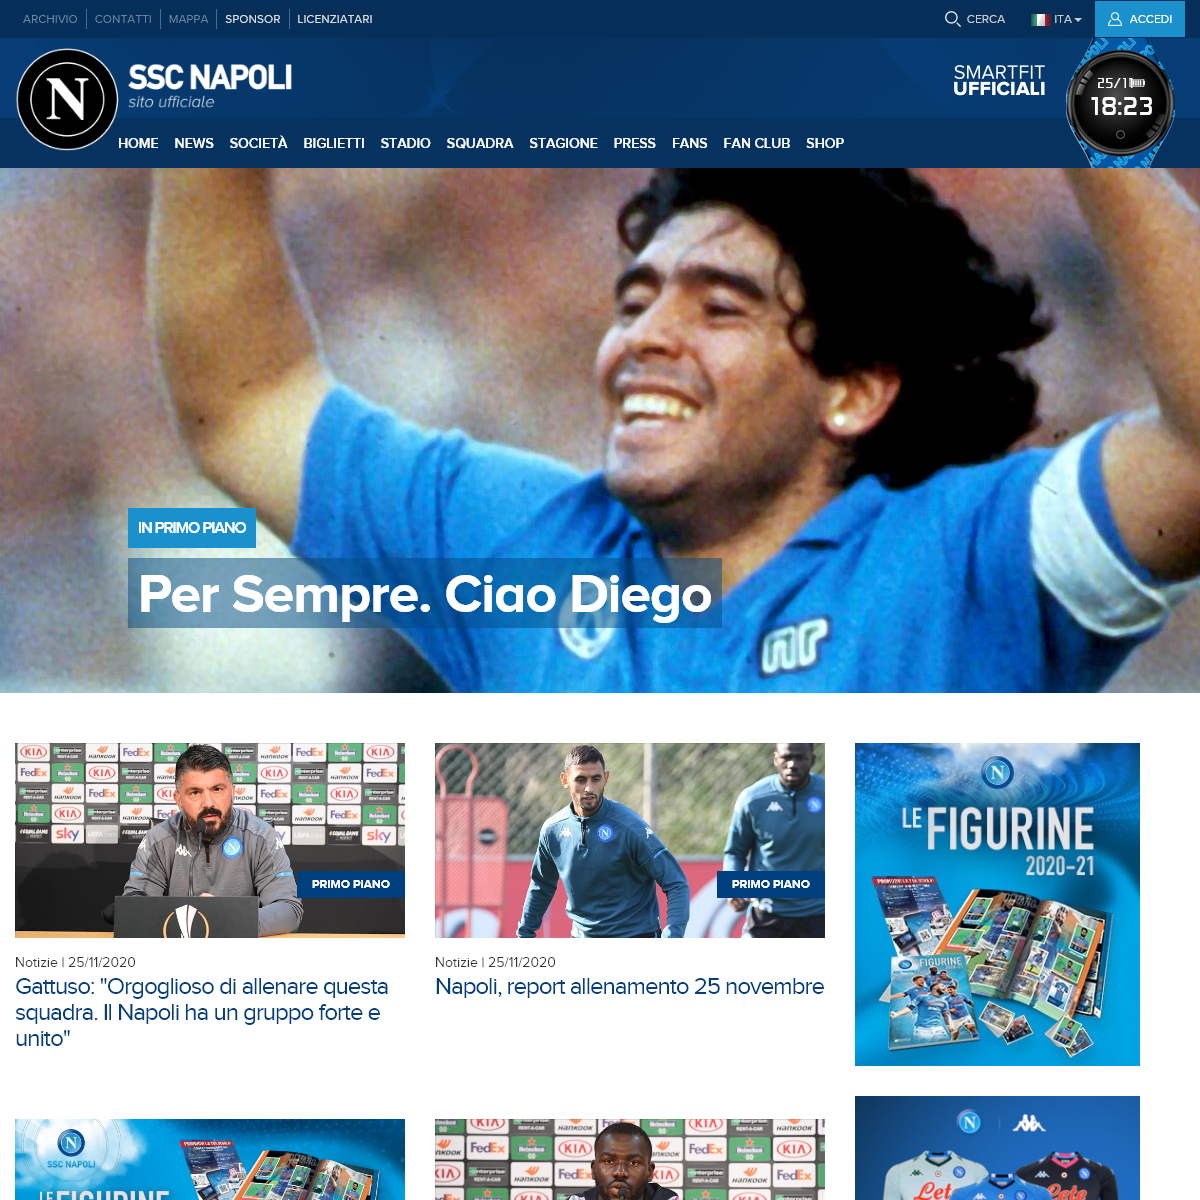 Home - SSC Napoli